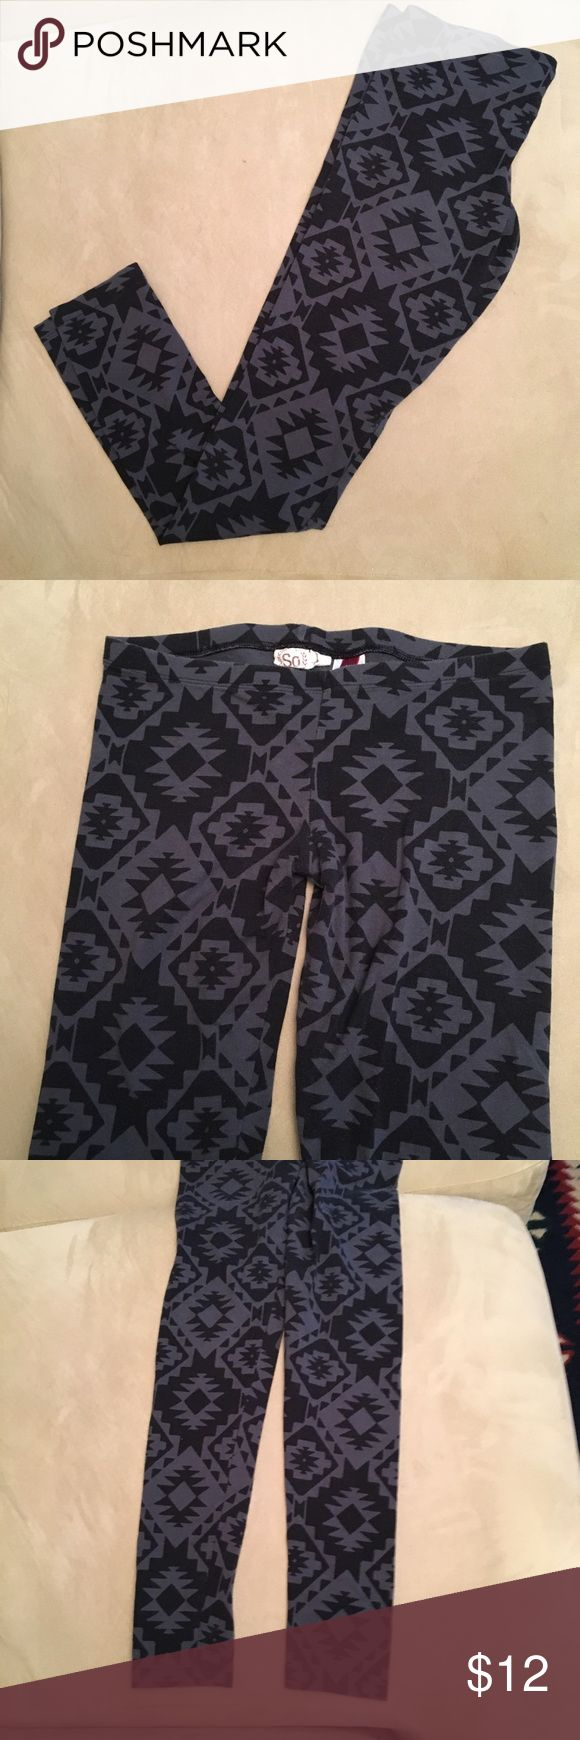 Black and Gray Aztec Leggings These black and gray Aztec print leggings are in good condition. They show general signs of wear but no holes or stains. Still plenty of life left in them. So Pants Leggings